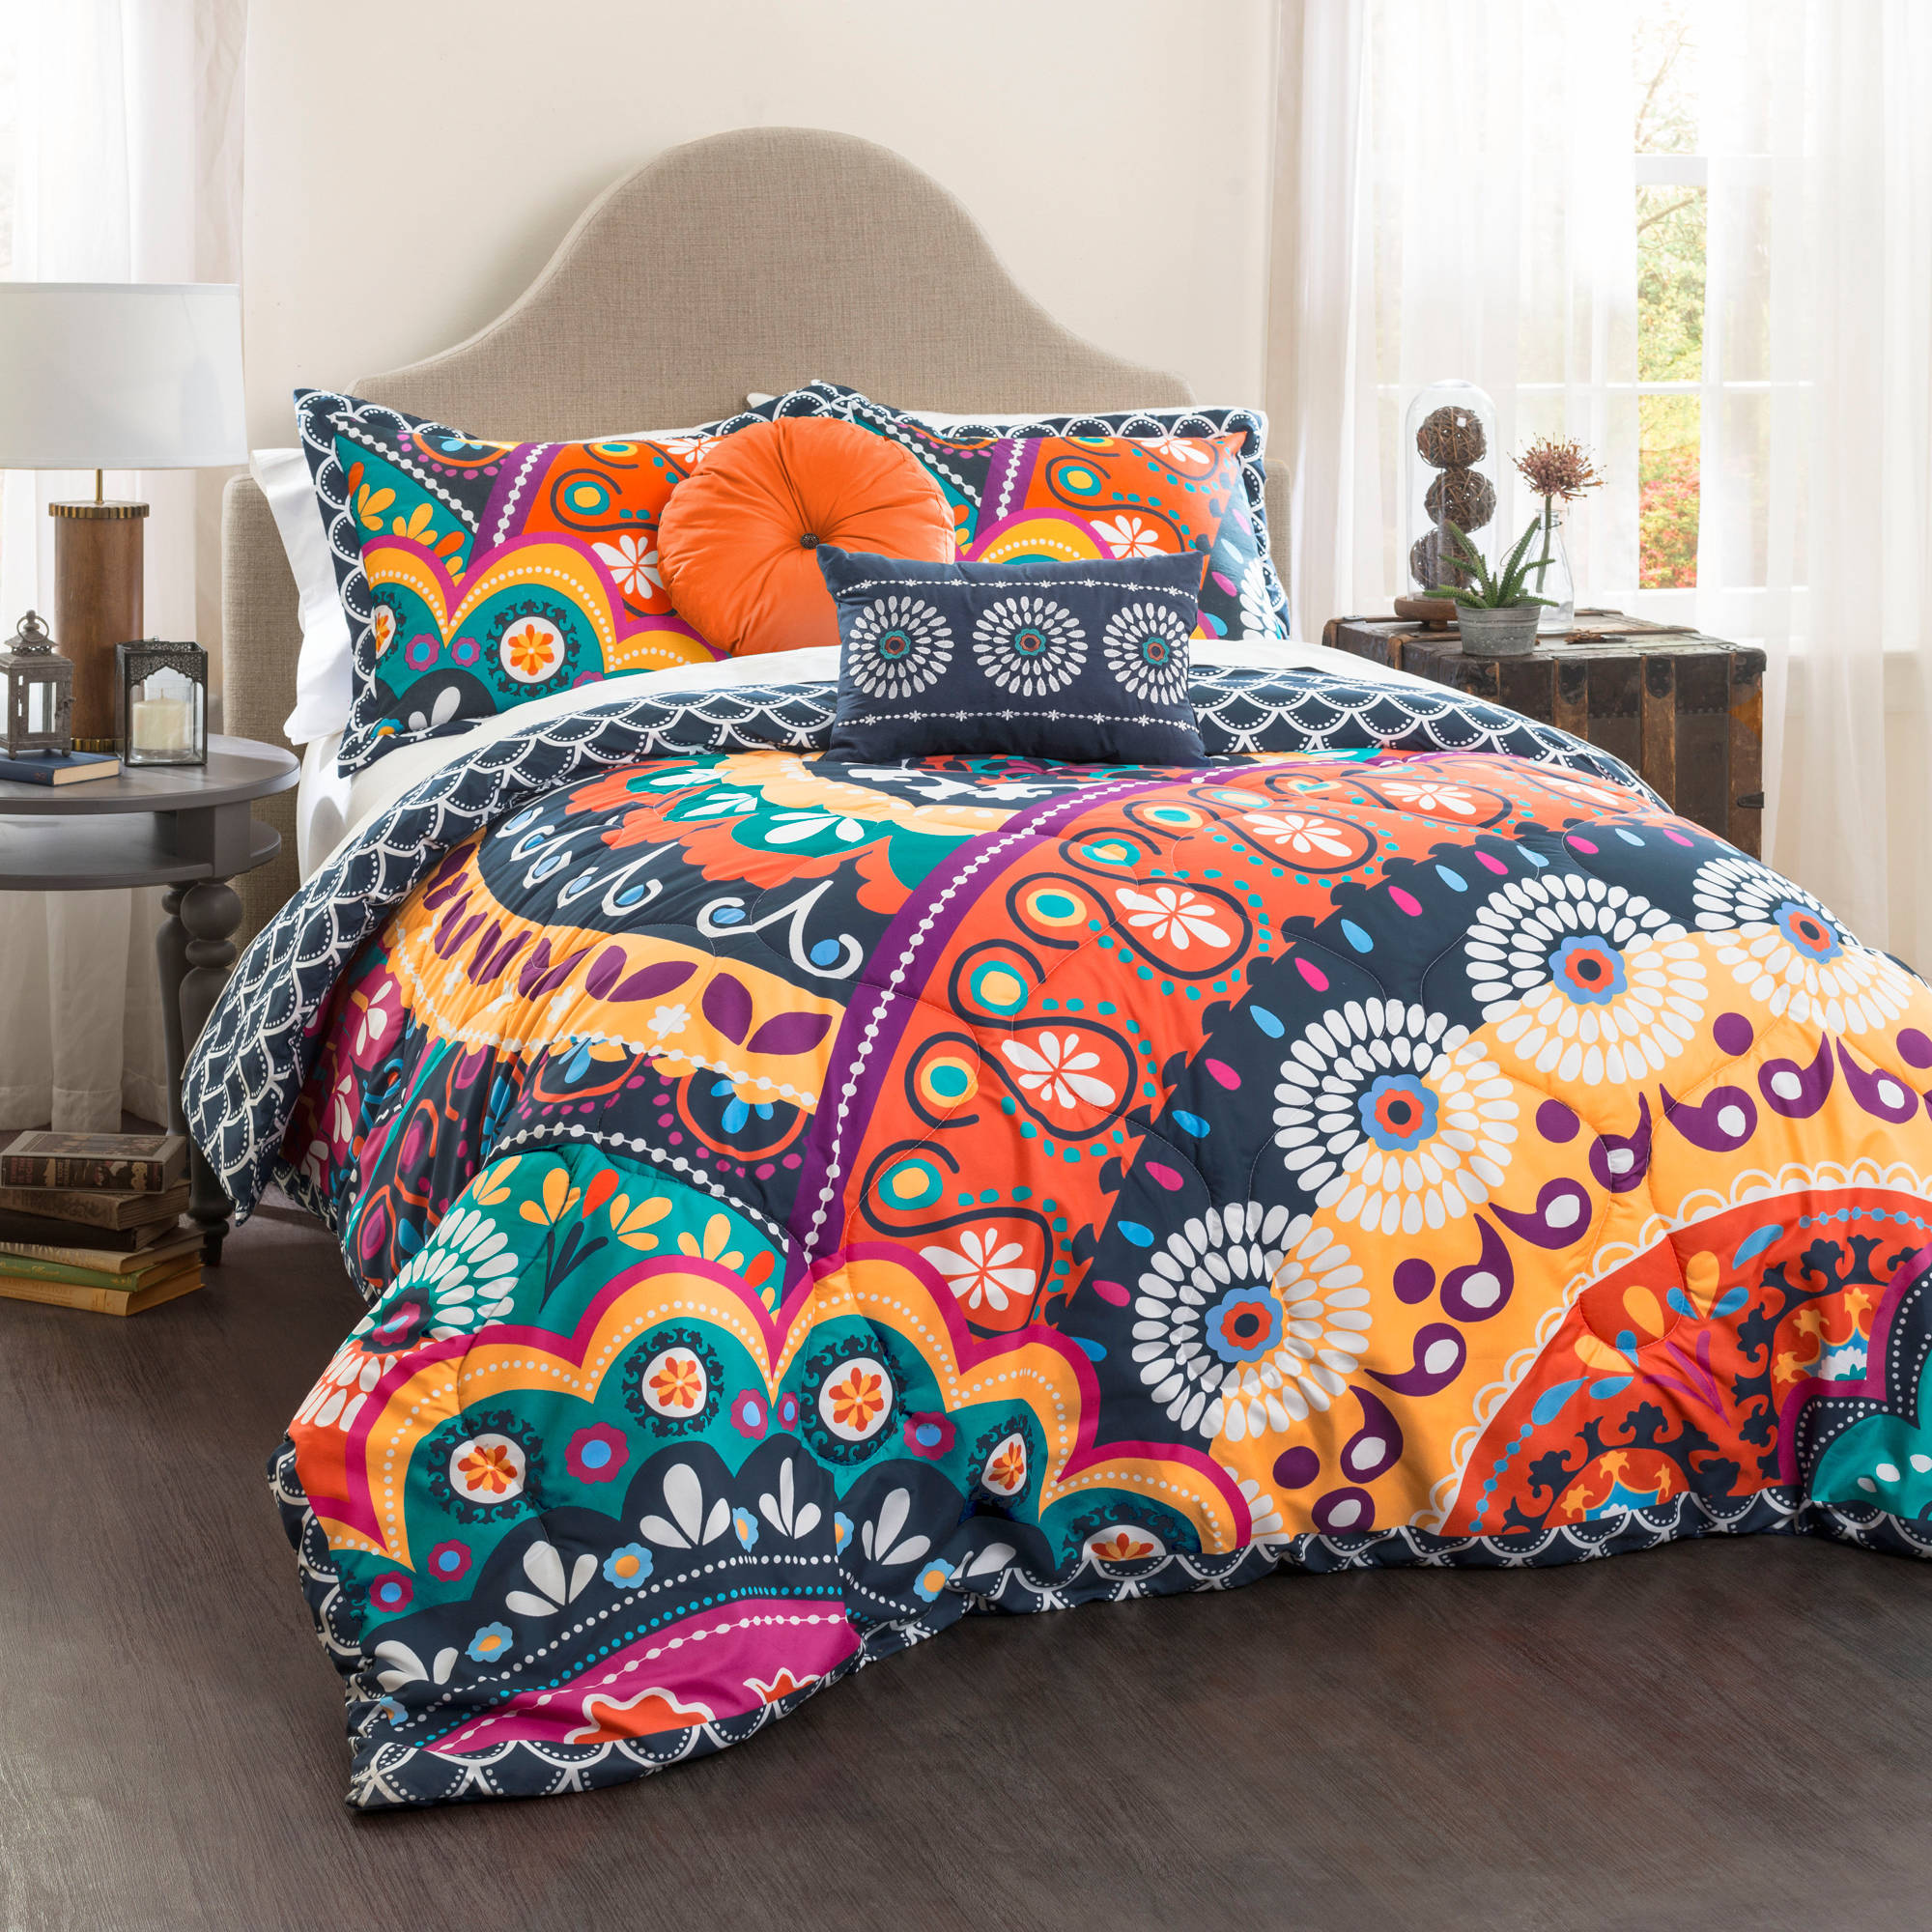 Maya Quilted Comforter Navy/Orange 5 Piece Set, King   Walmart.com